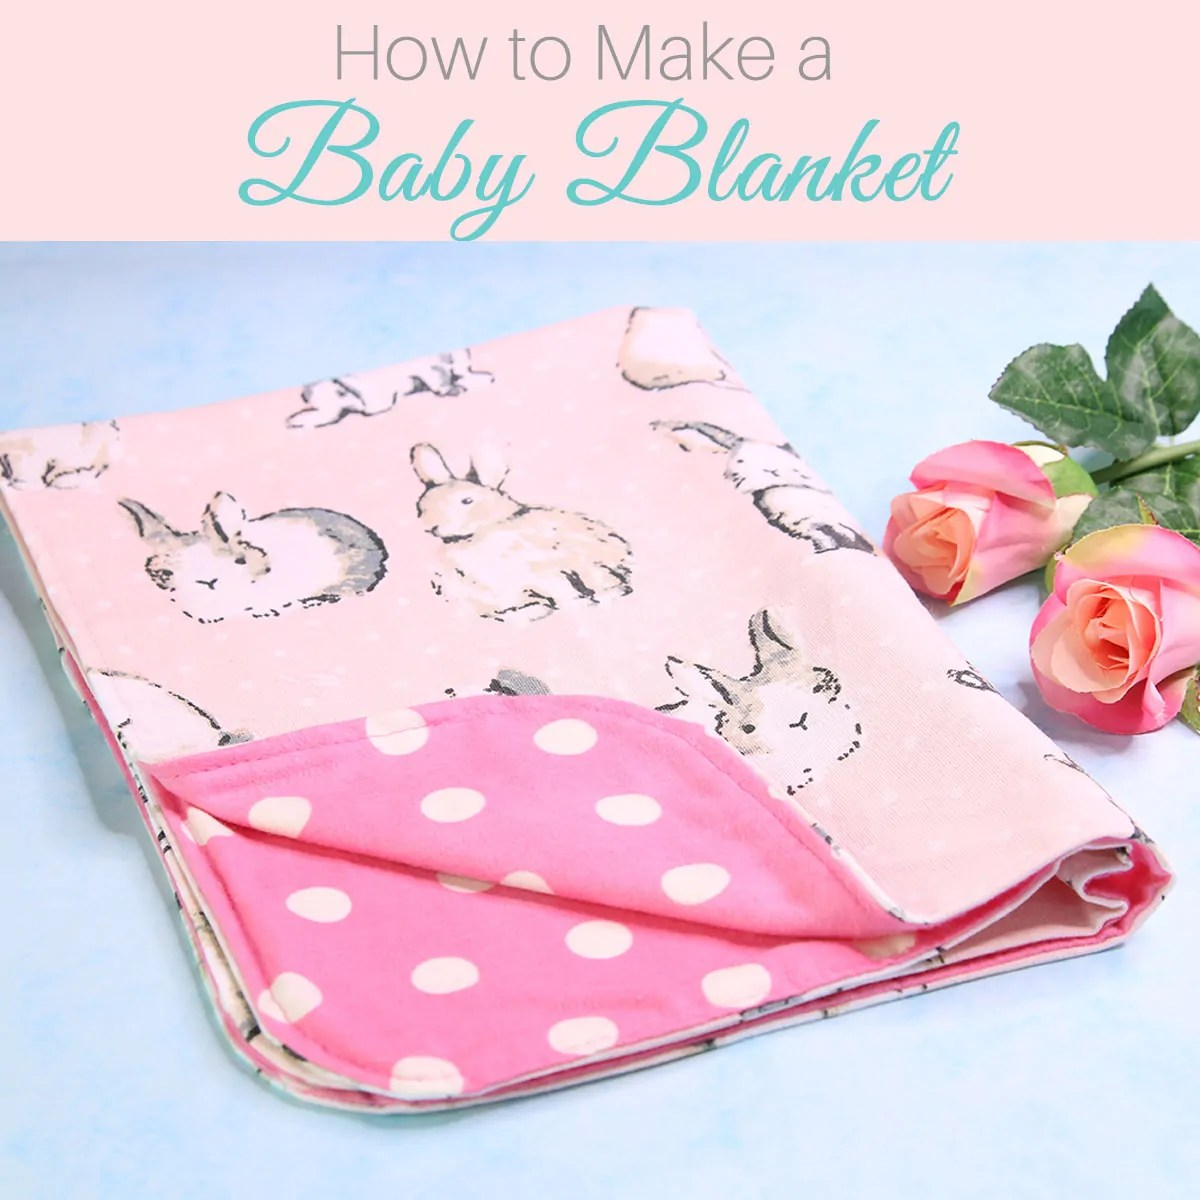 How To Make A Baby Blanket How To Make A Baby Blanket Easiest Blanket In 4 Sizes